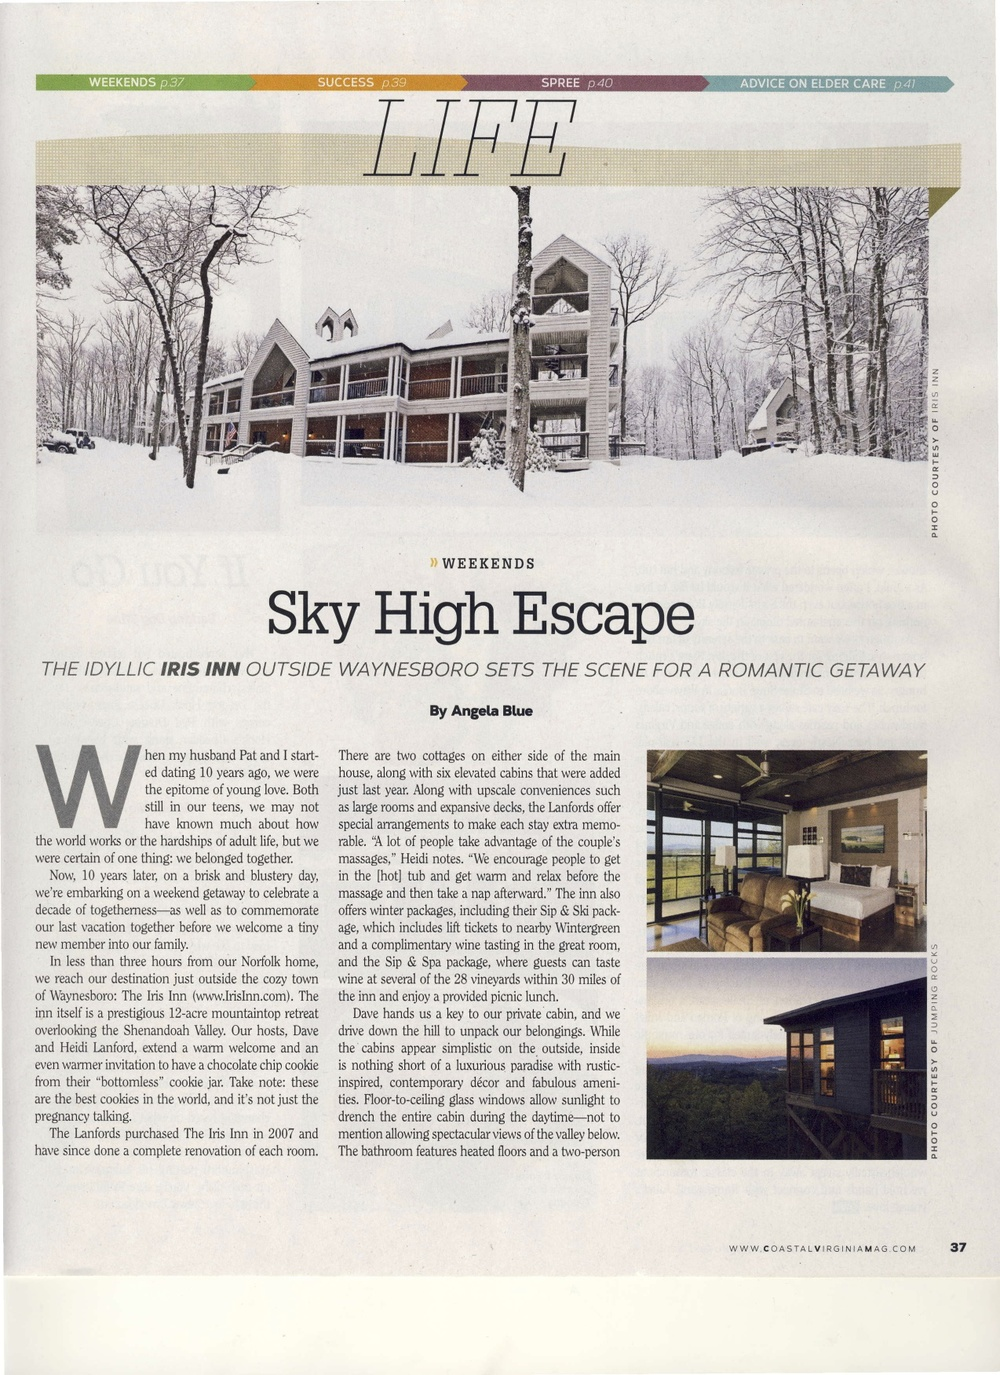 The Iris Inn was featured in Coastal Virginia Magazine